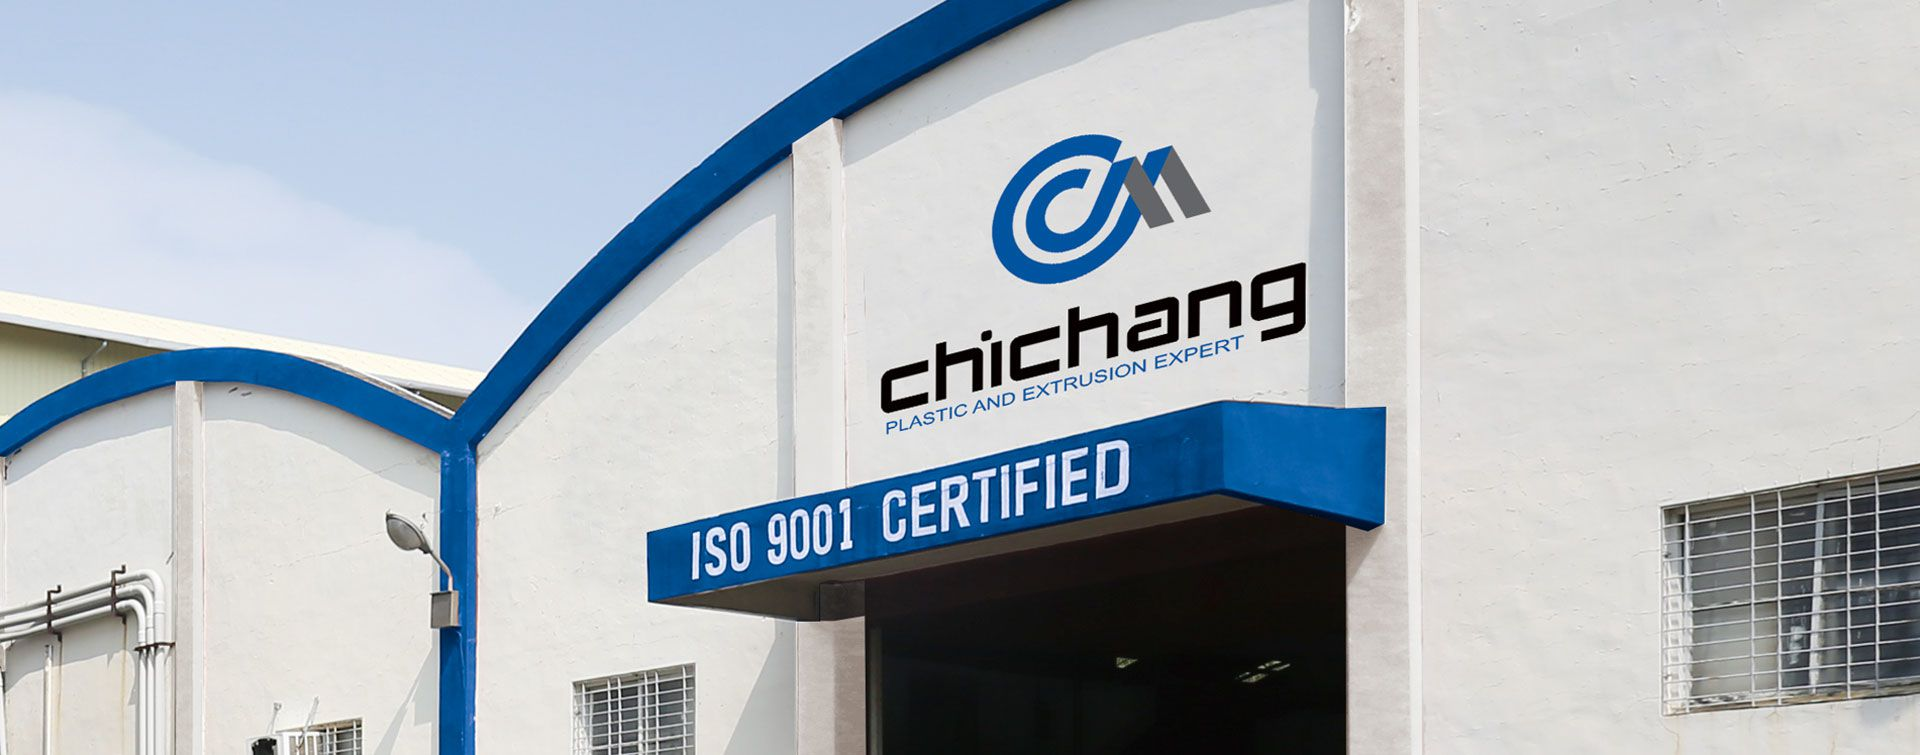 CHI CHANG MACHINERY ENTERPRISE CO., LTD.